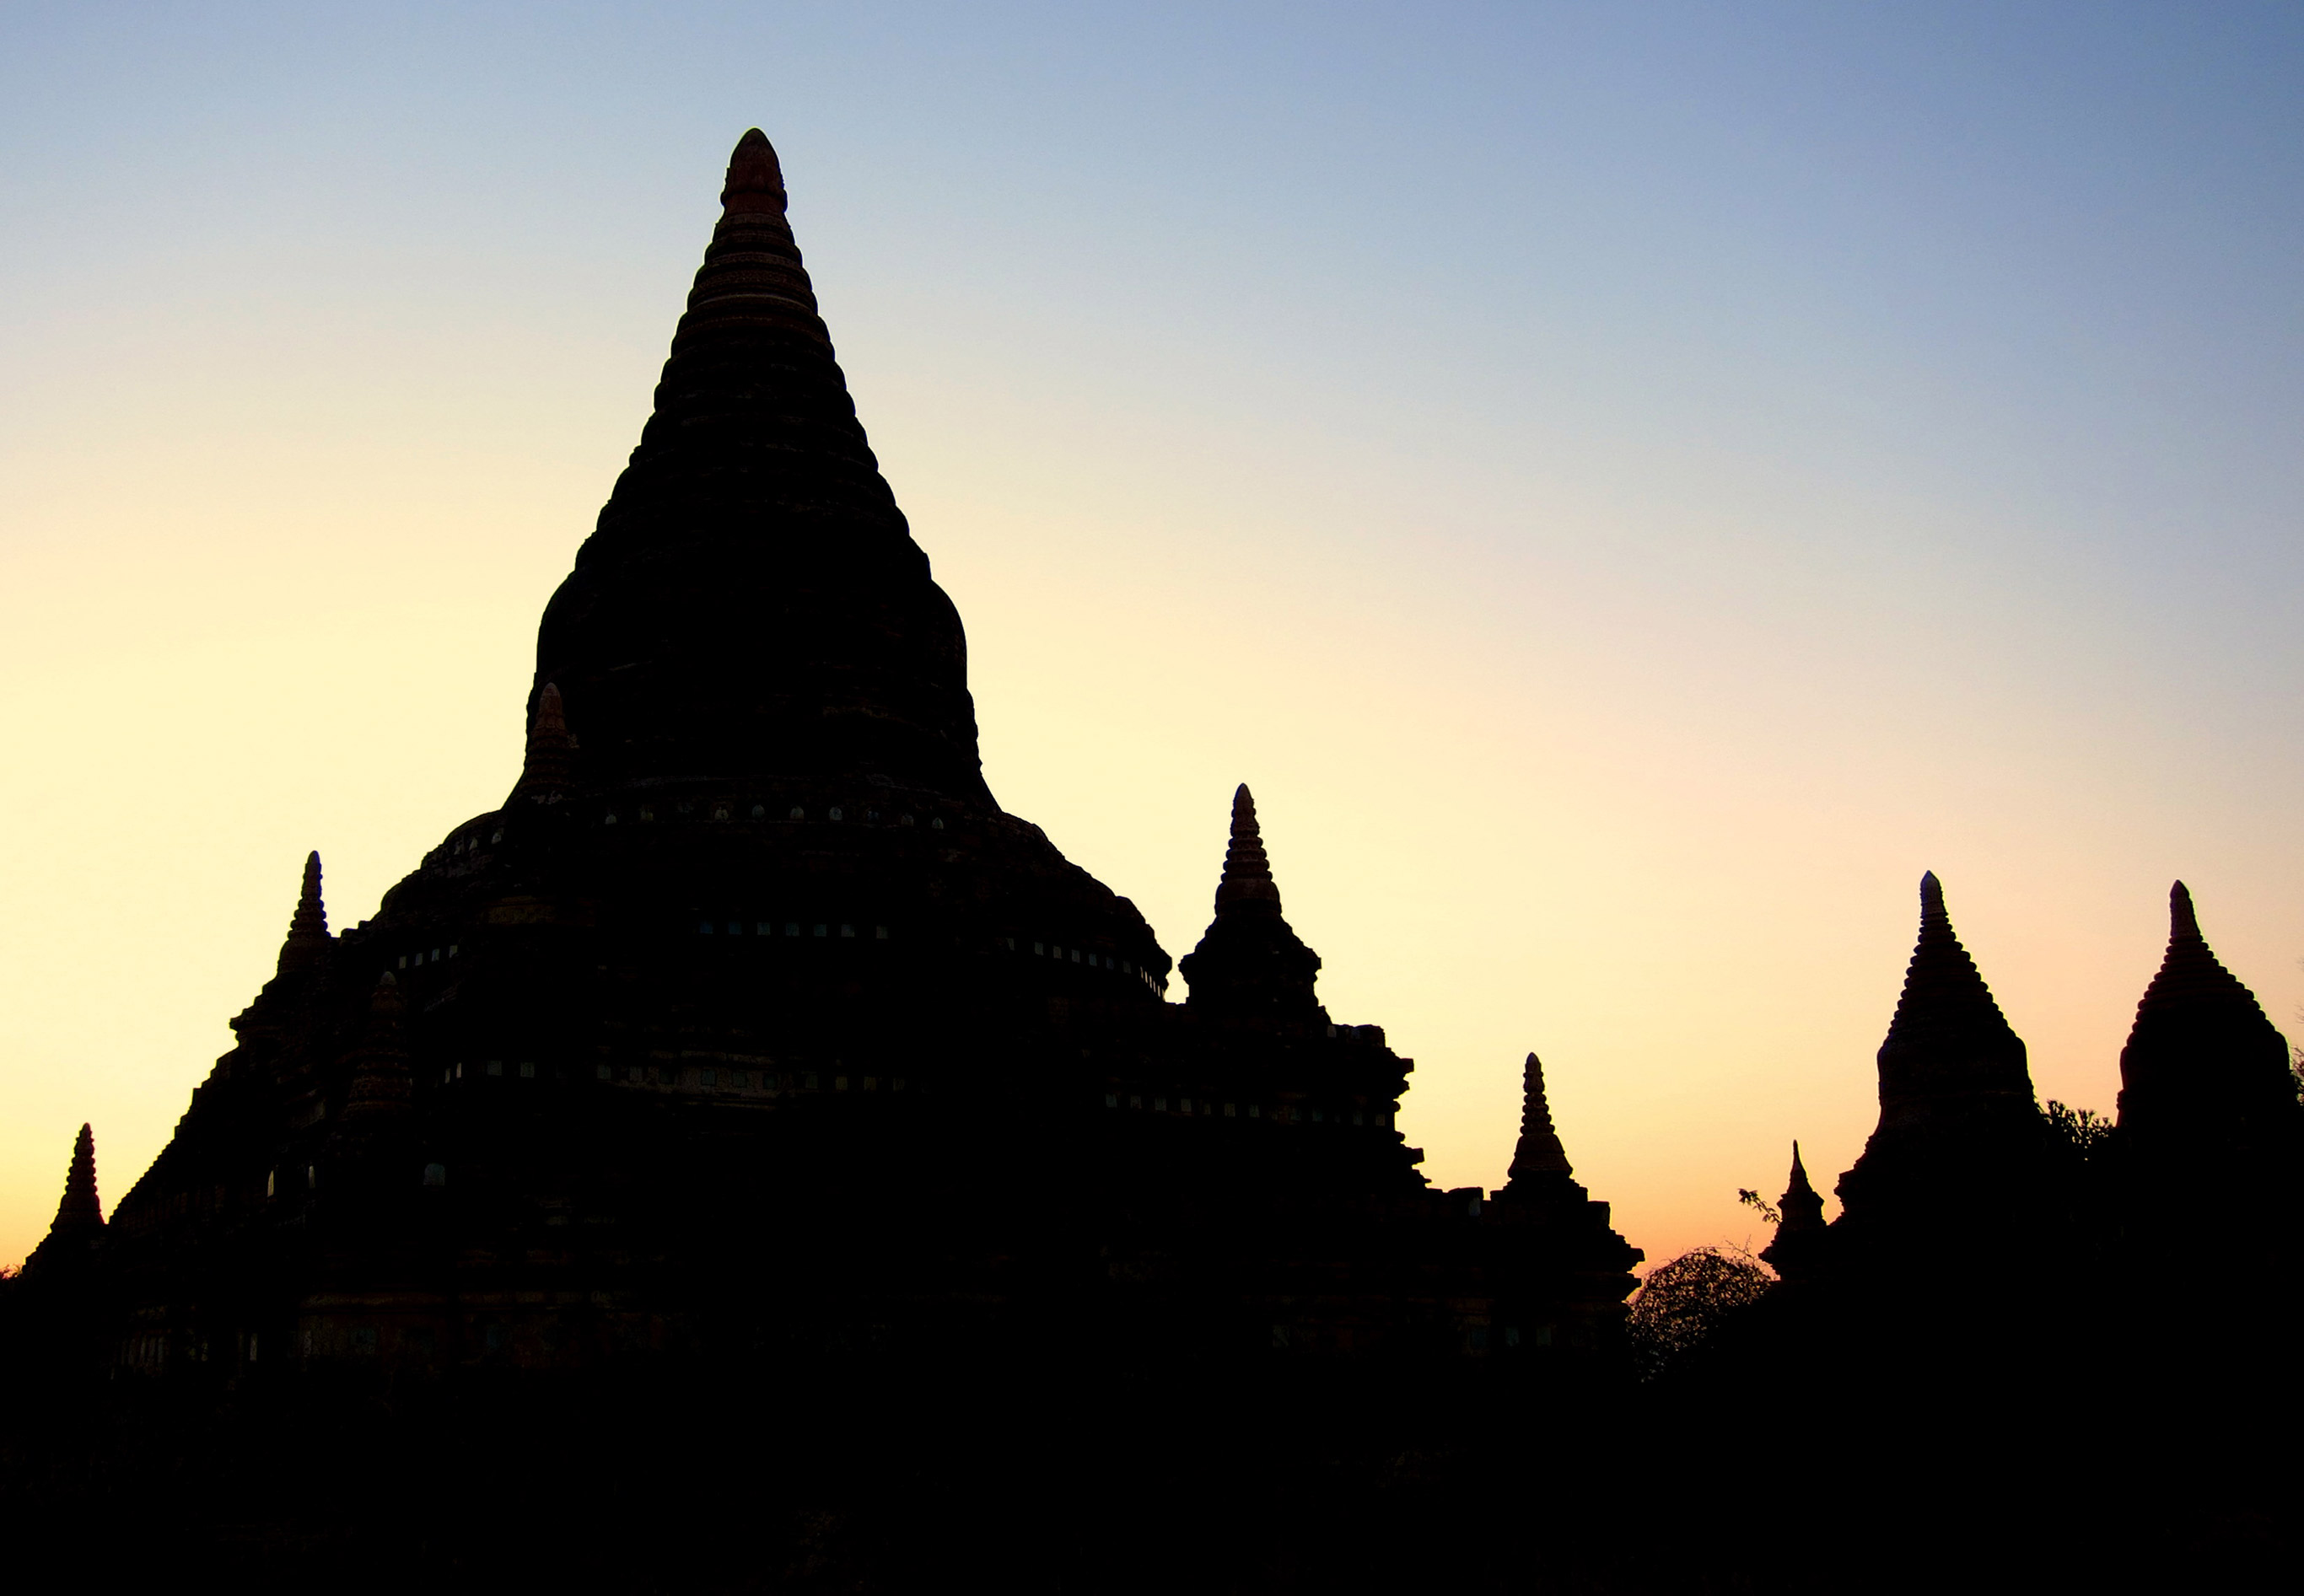 Dawn over the temples of Bagan, in Burma.